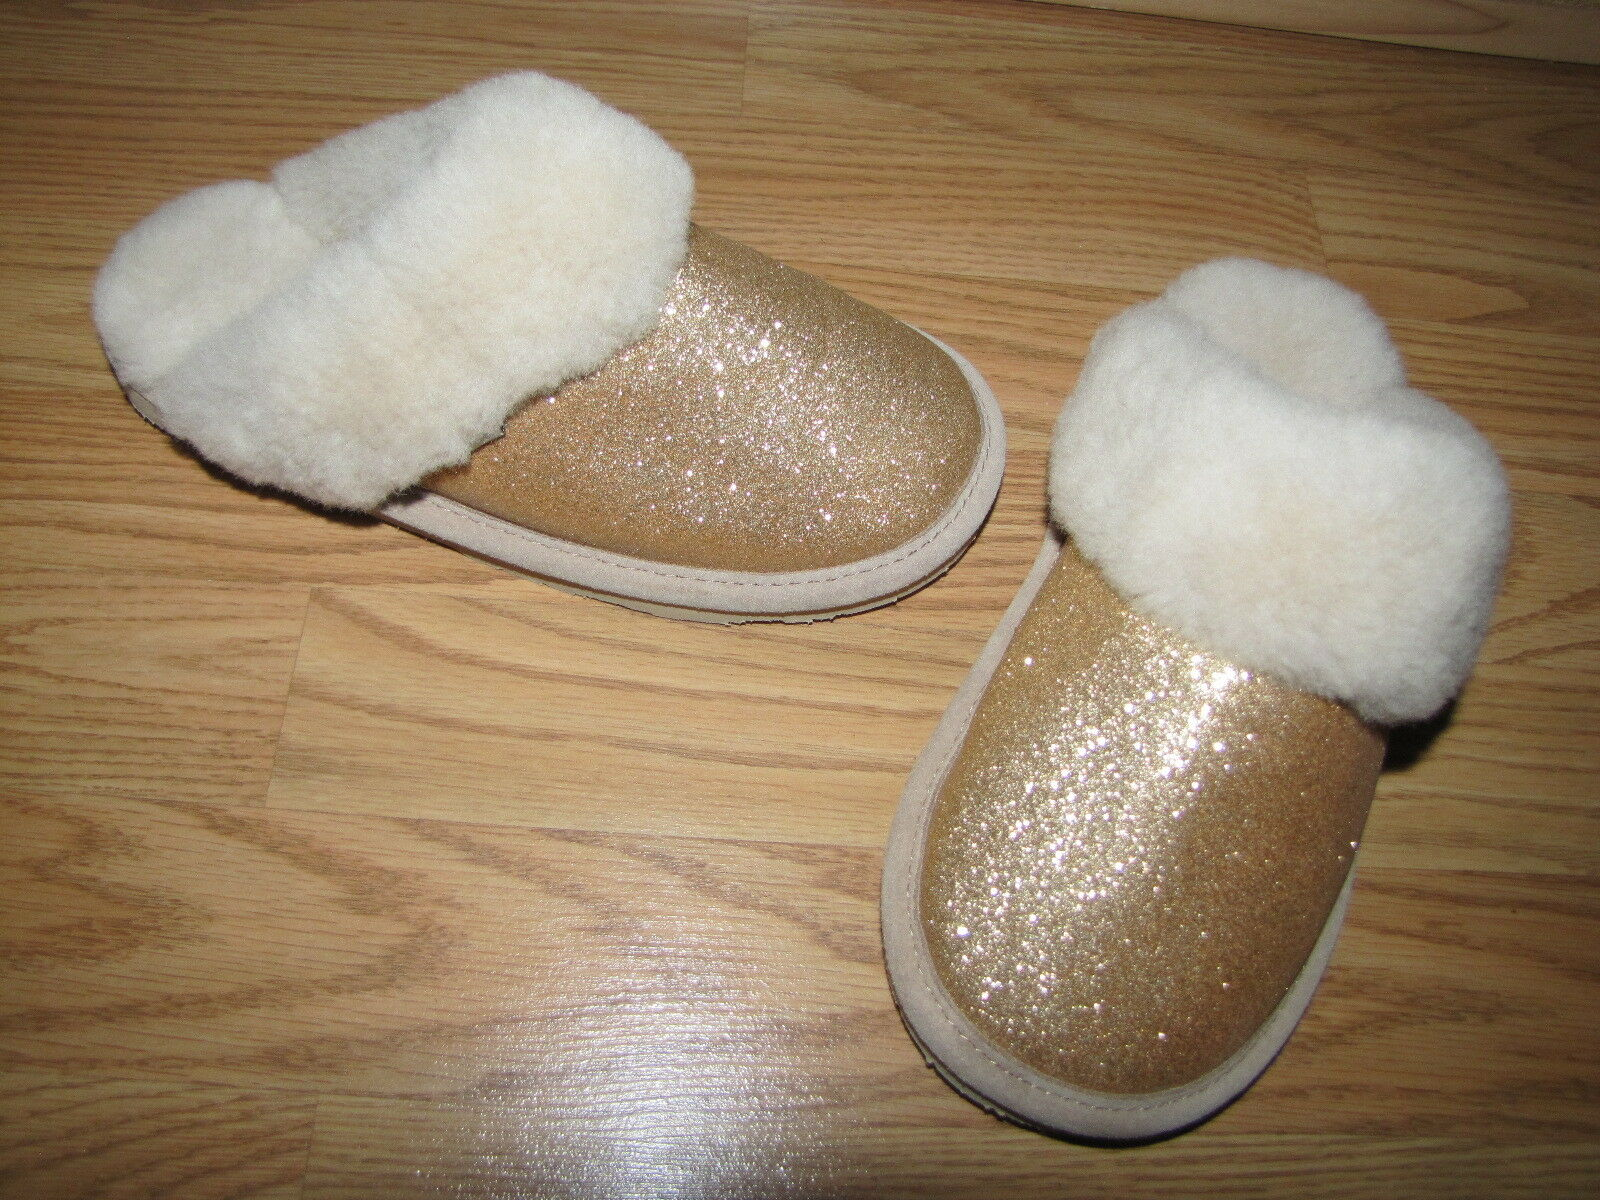 NWOB Bearpaw 'Laney' gold Glitter Sheepskin Slippers - 6M European 36